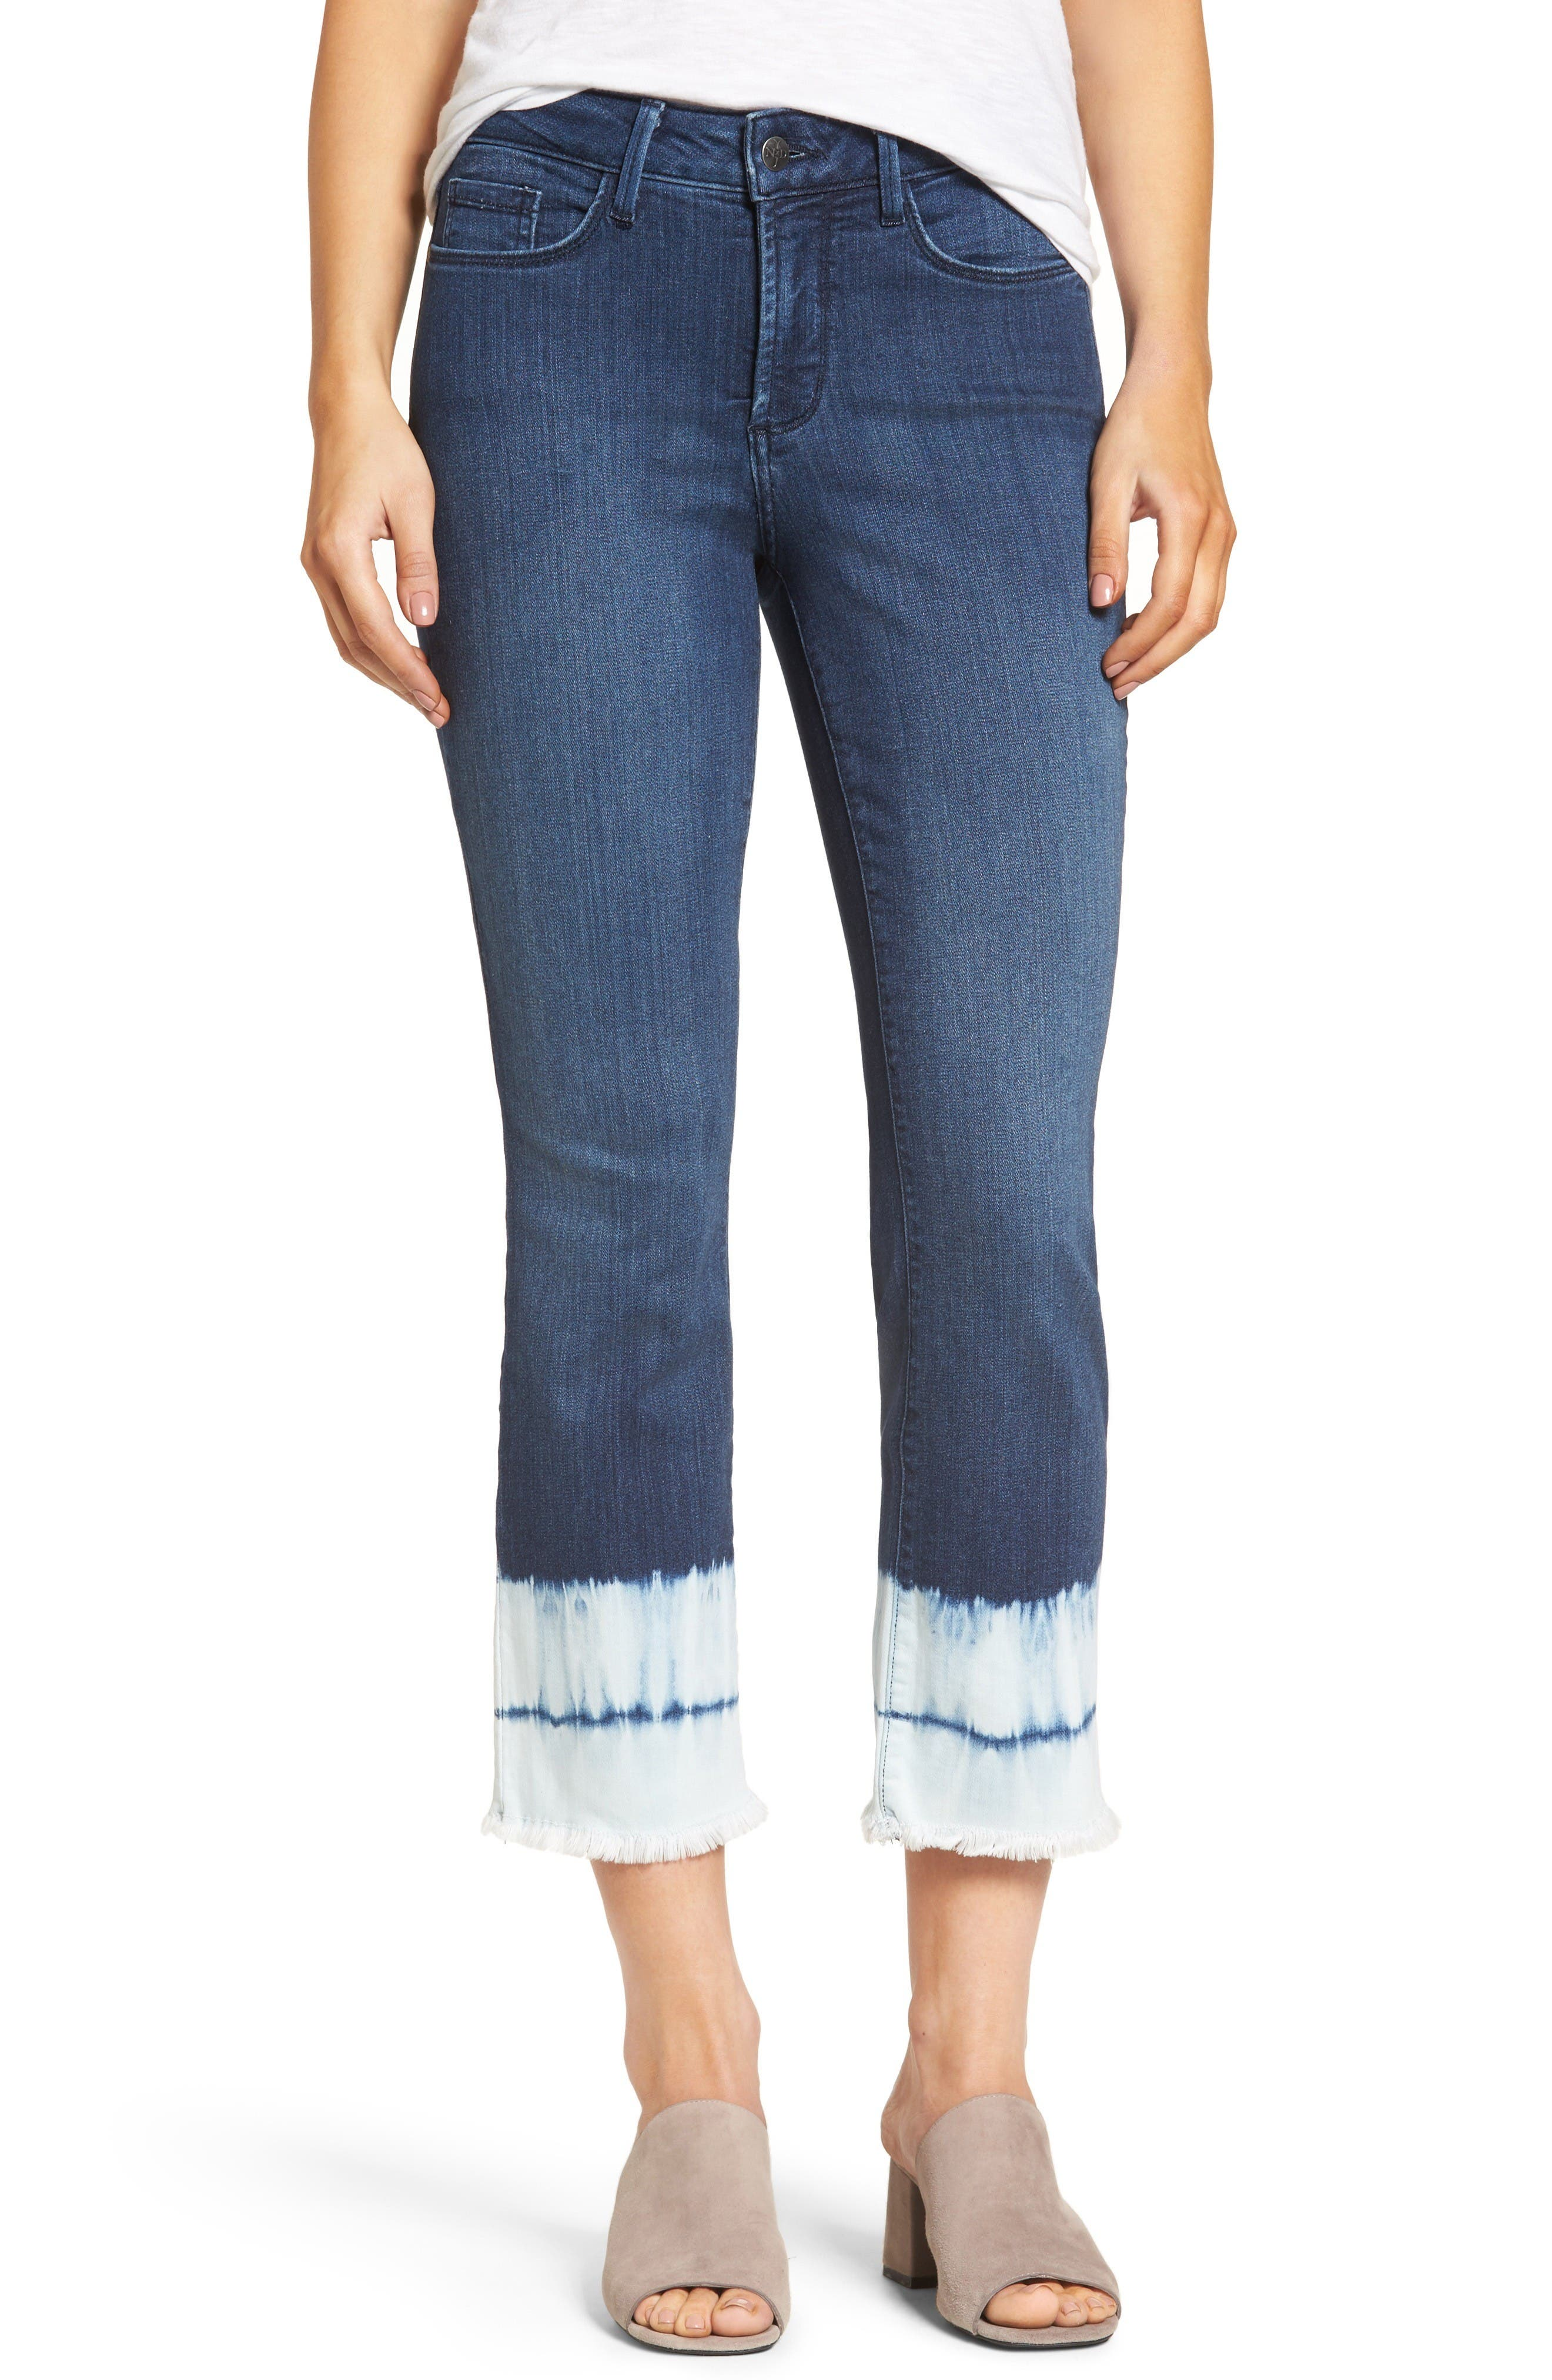 Alternate Image 1 Selected - NYDJ Billie Stretch Crop Bootcut Jeans (Bleached Tie Dye Hem)